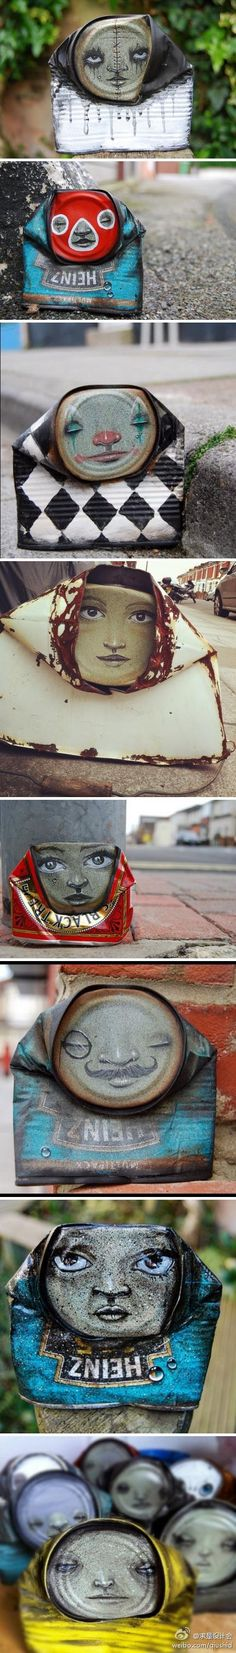 artist My Dog Sighs creates painted faces on found crushed cans, which he then leaves on the streets in random places for passers-by to take home. It is both an art installation project and an altruistic gesture dedicated to the cause of free art for everyone.